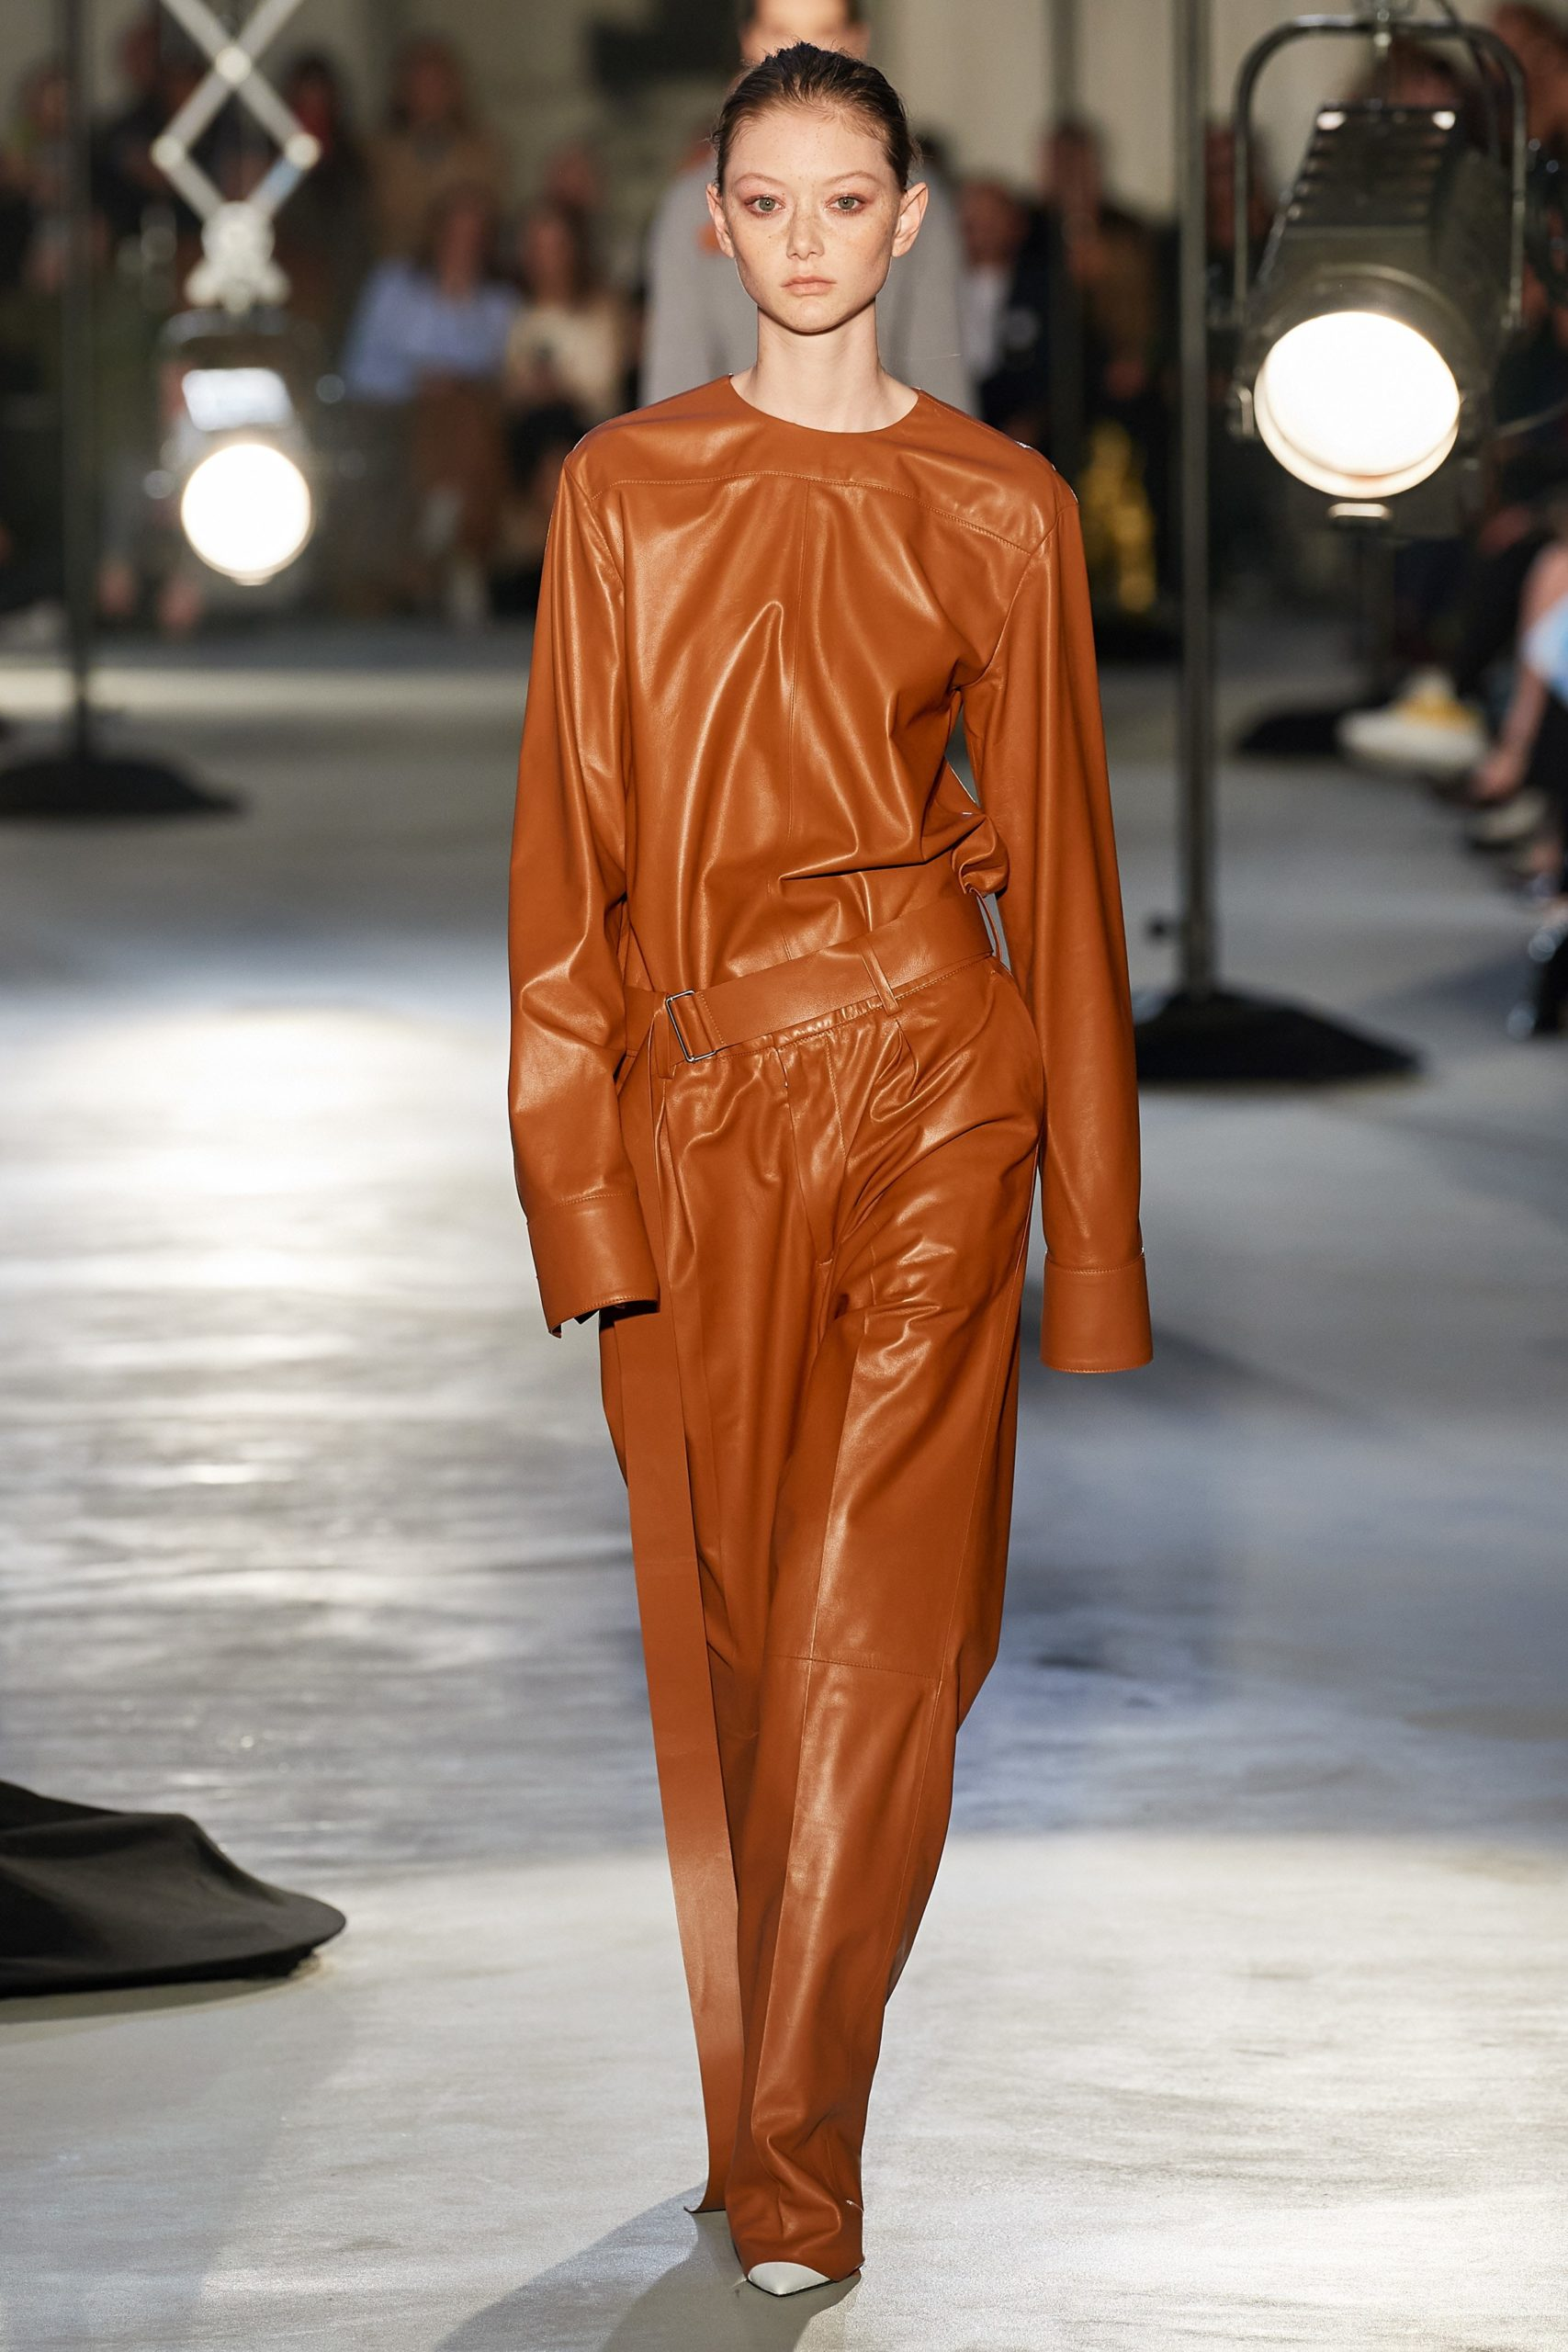 Numero 21 Fall 2020 trends runway coverage Ready To Wear Vogue caramel monochrome